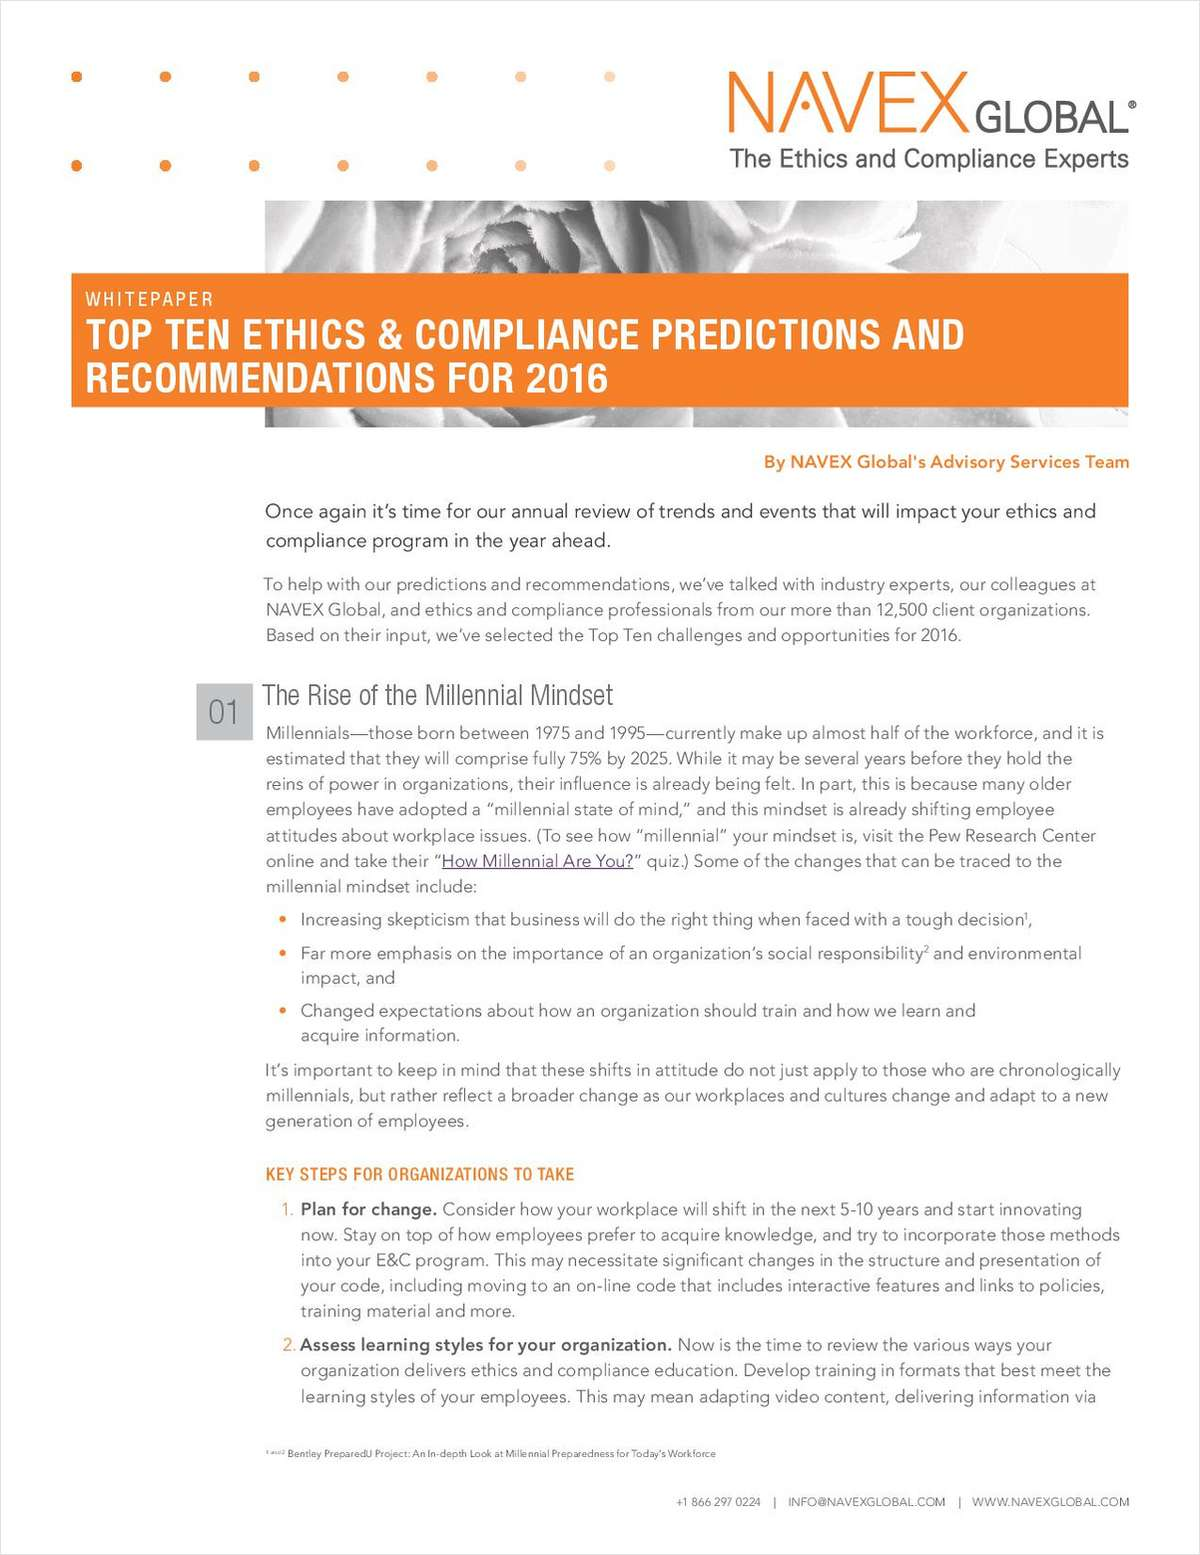 Top Ten E&C Predictions for 2016 for Ethics, Legal and Compliance Professionals